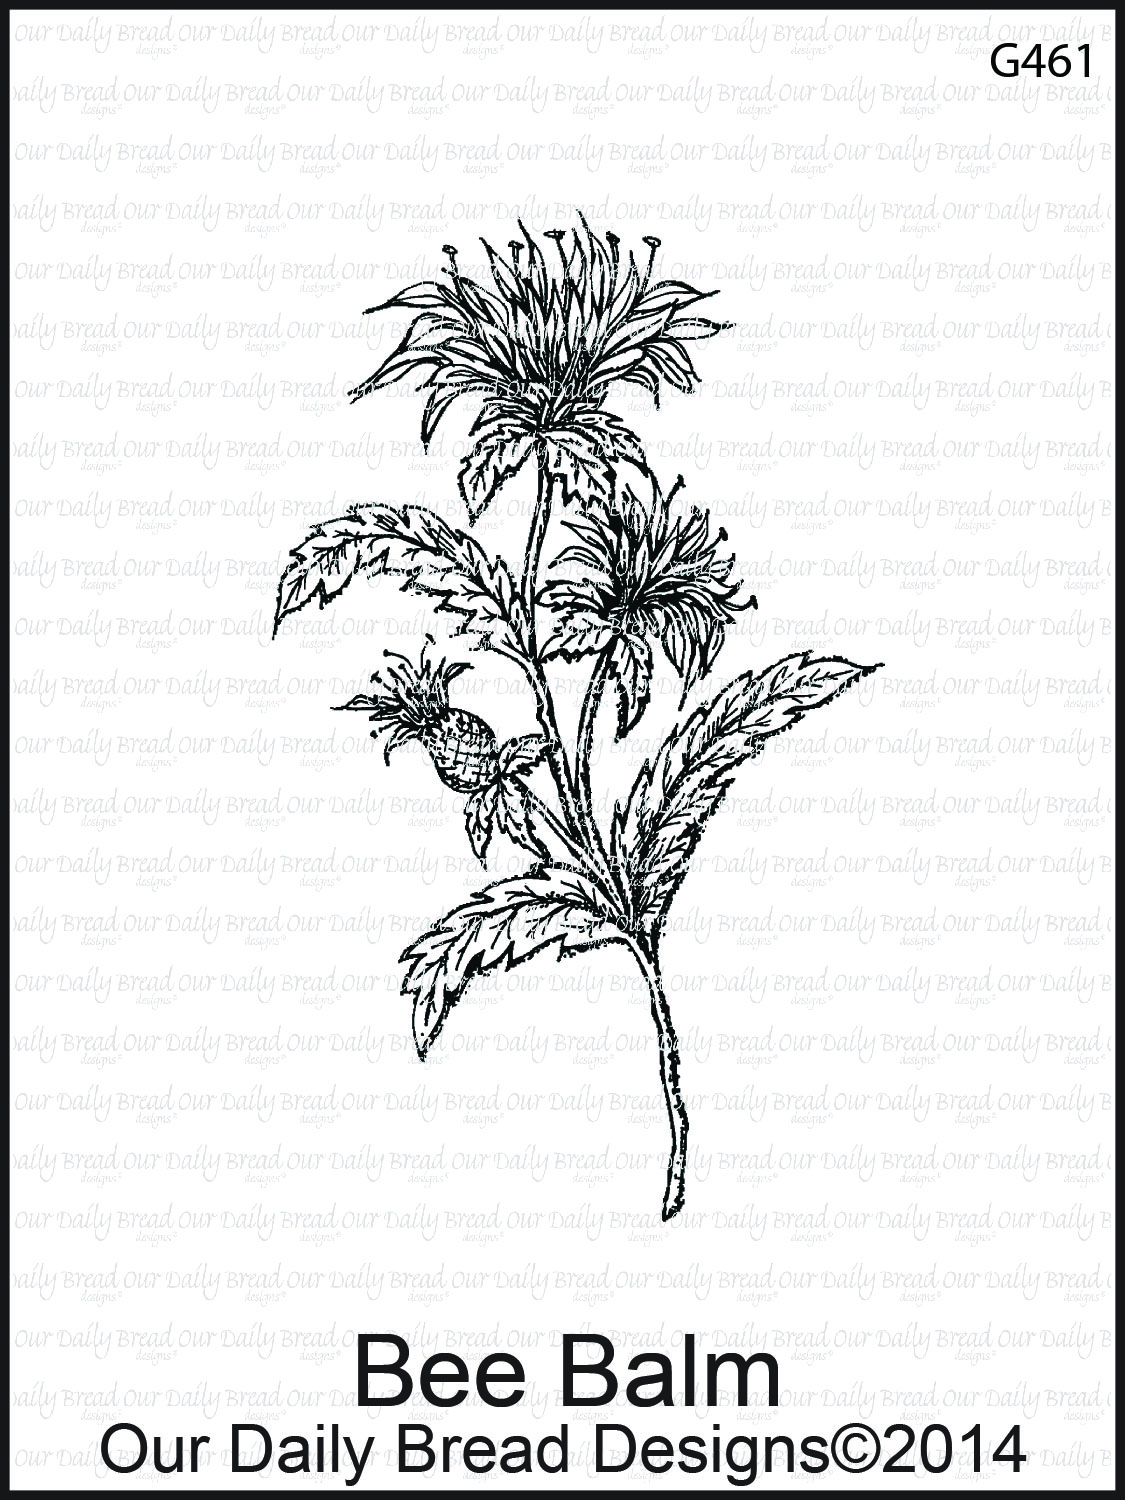 Stamps - Our Daily Bread Designs Bee Balm